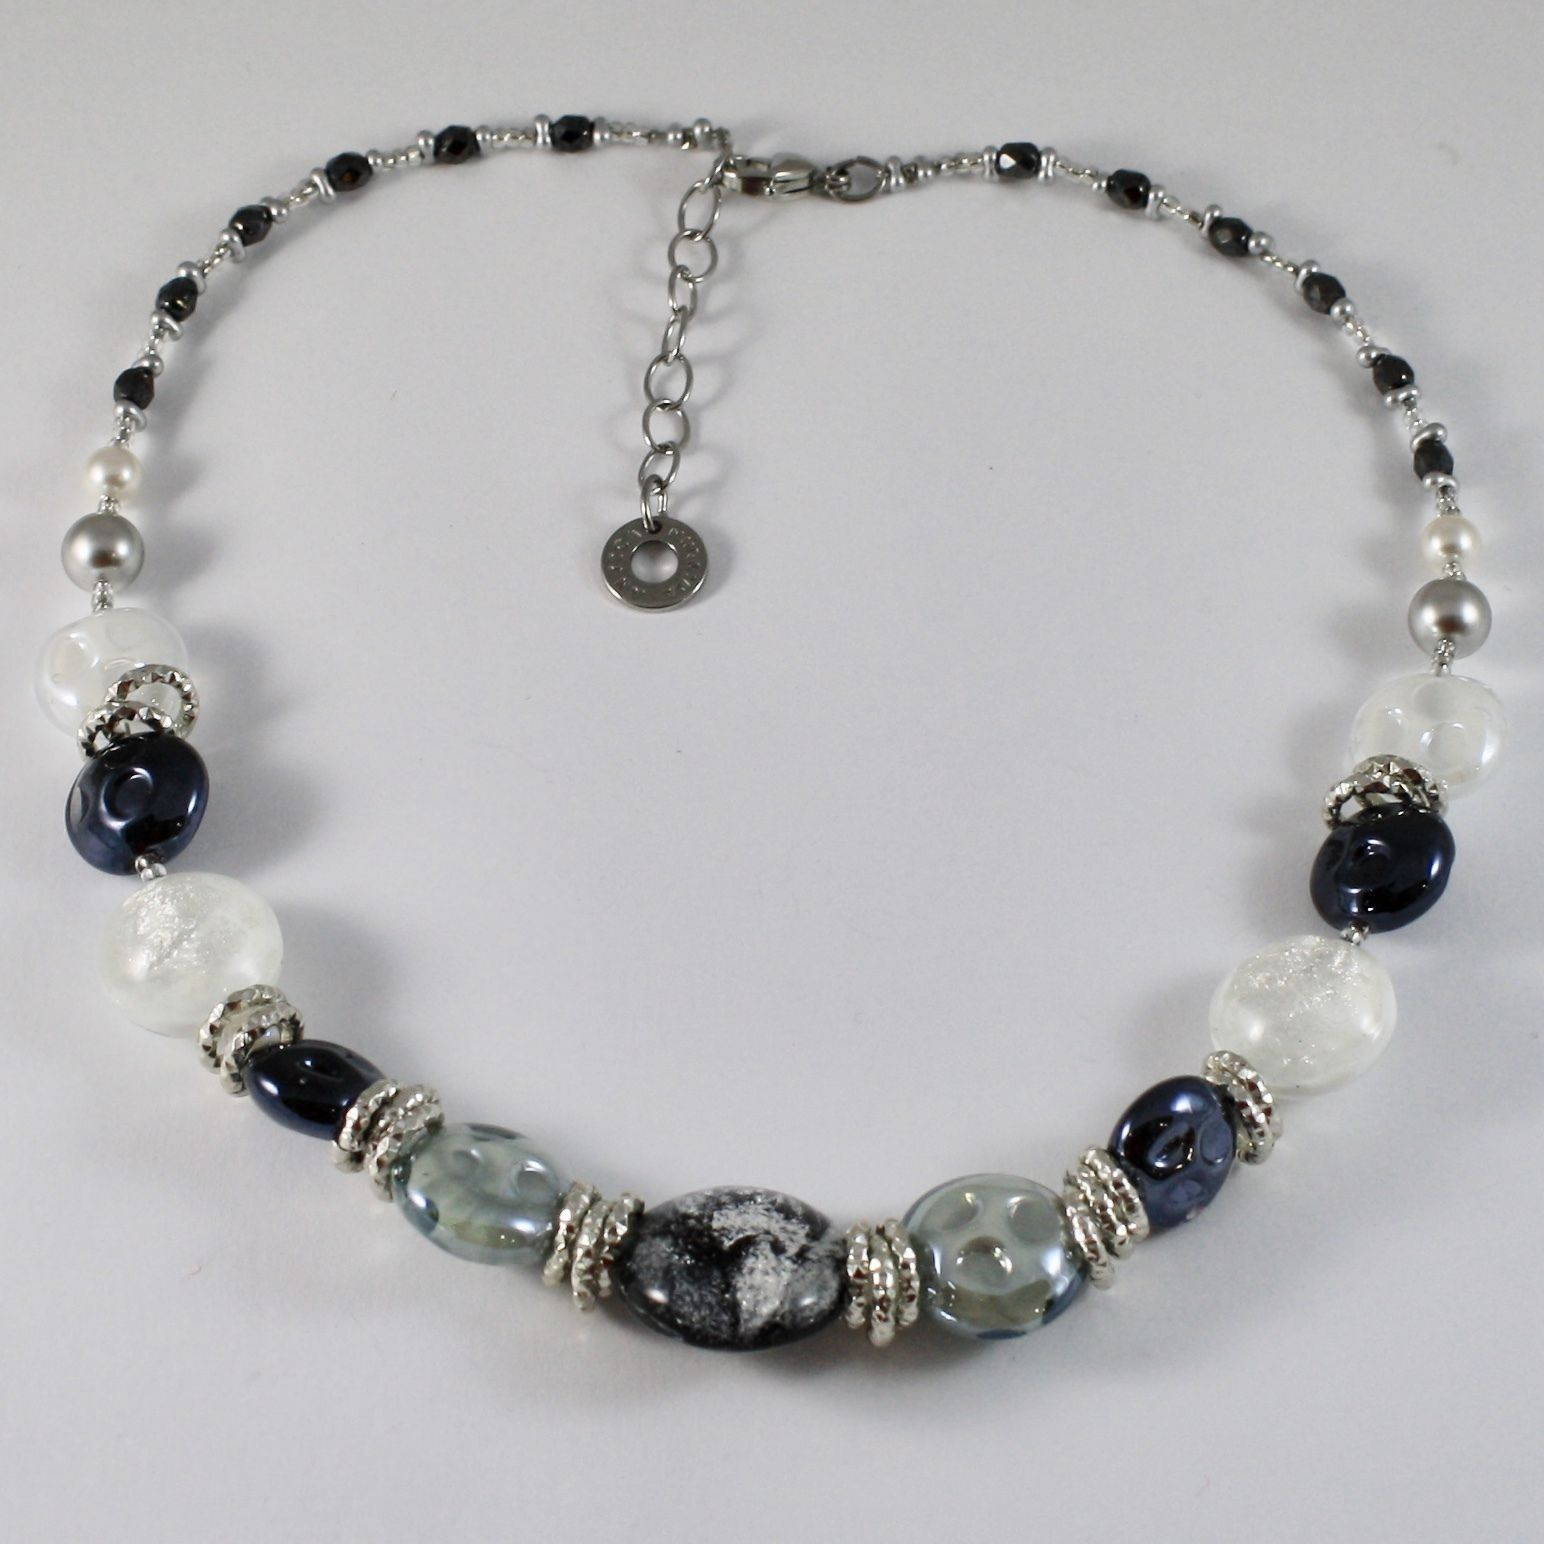 NECKLACE ANTICA MURRINA VENEZIA WITH MURANO GLASS BLACK GREY CO855A14